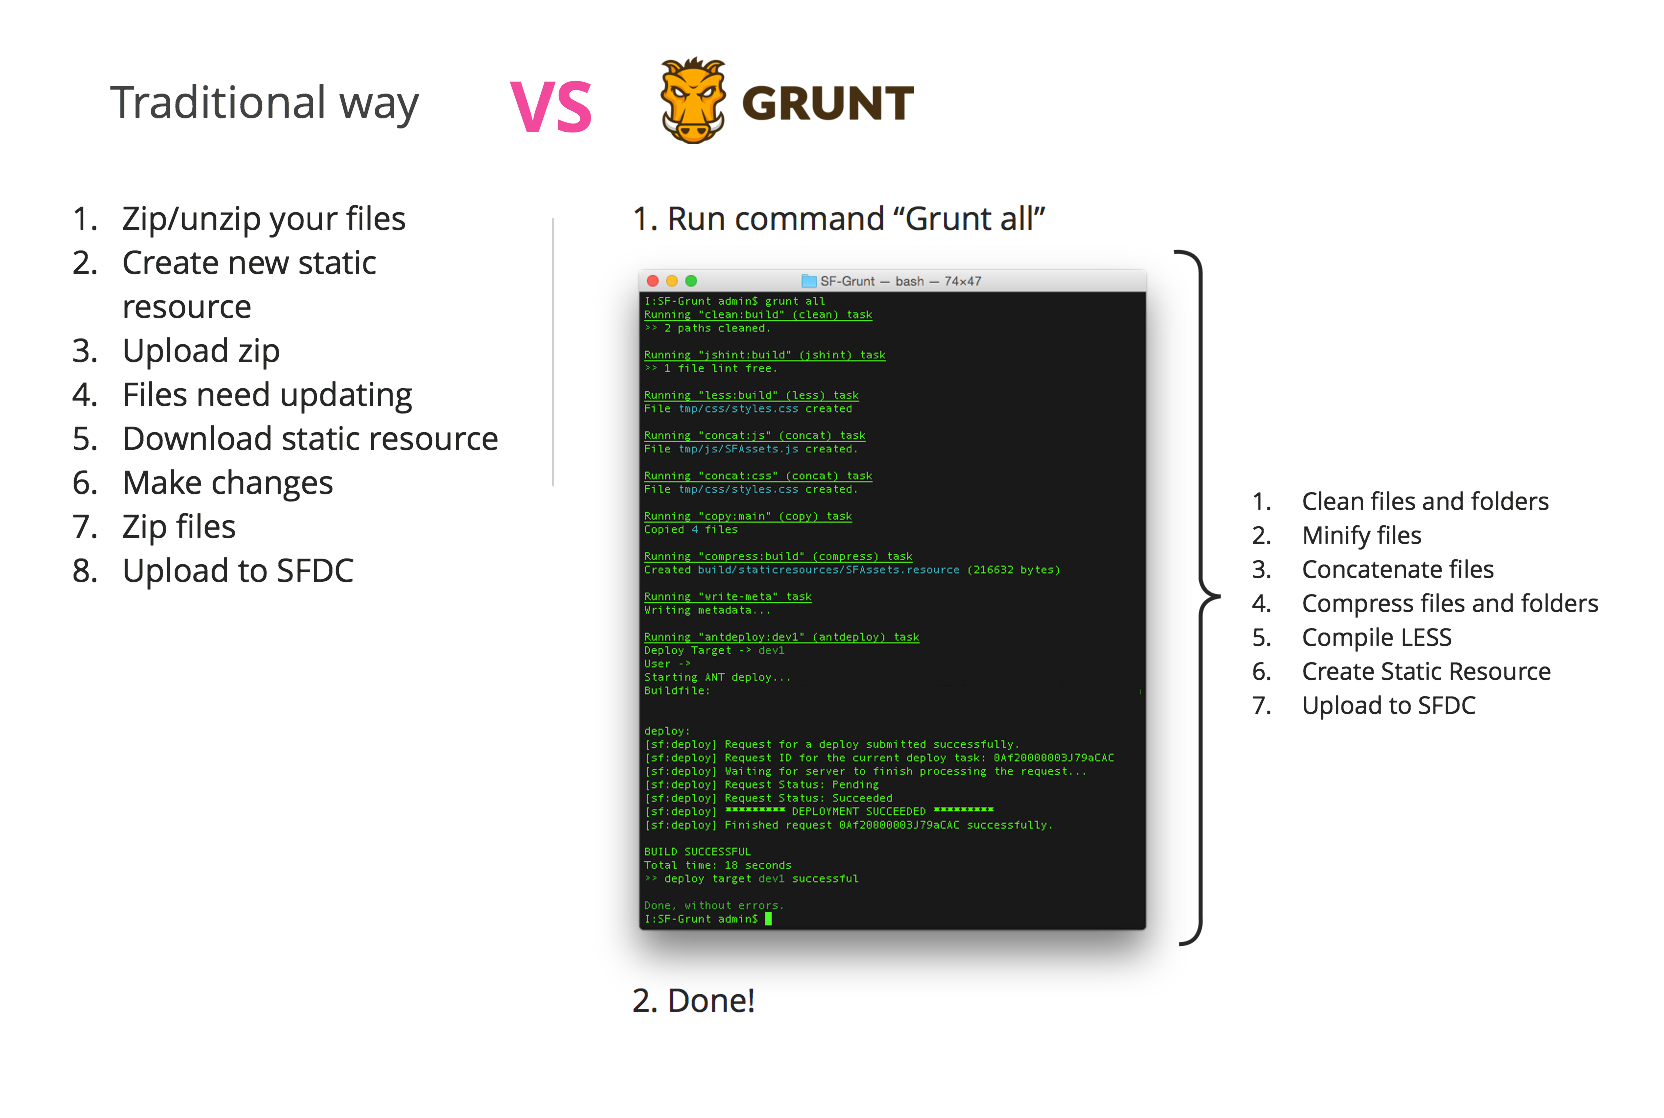 Supercharge your Salesforce development with GruntJS by Kim